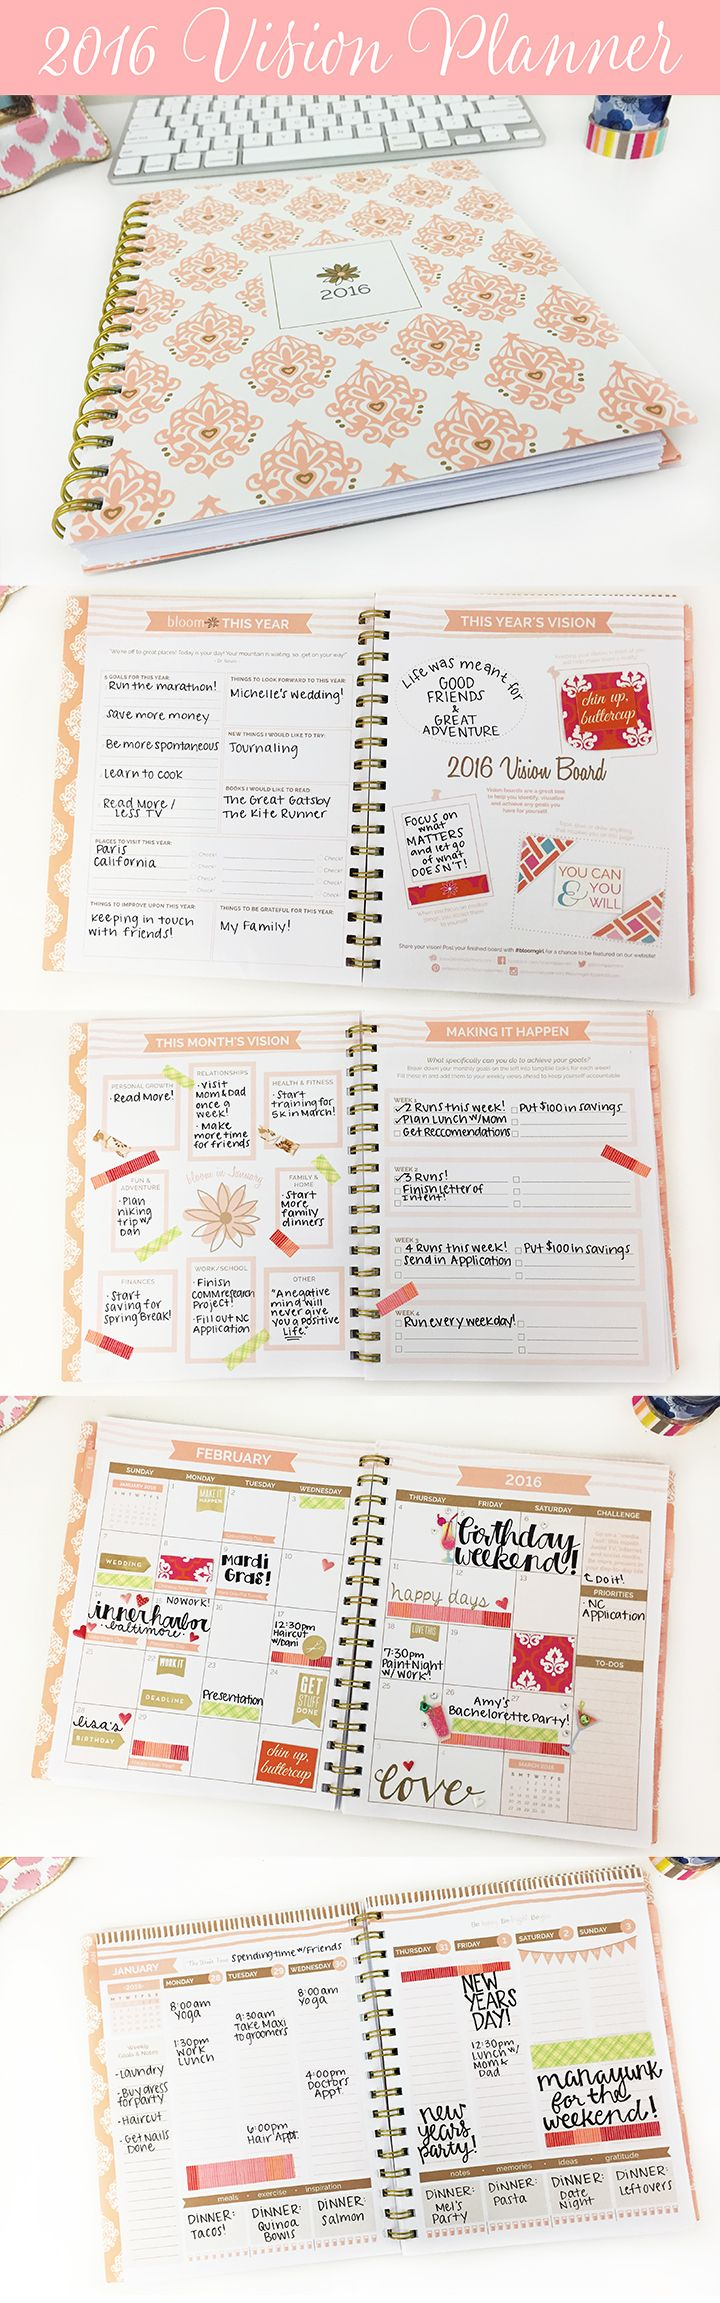 bloom s brand new 2016 vision planner is designed to help you